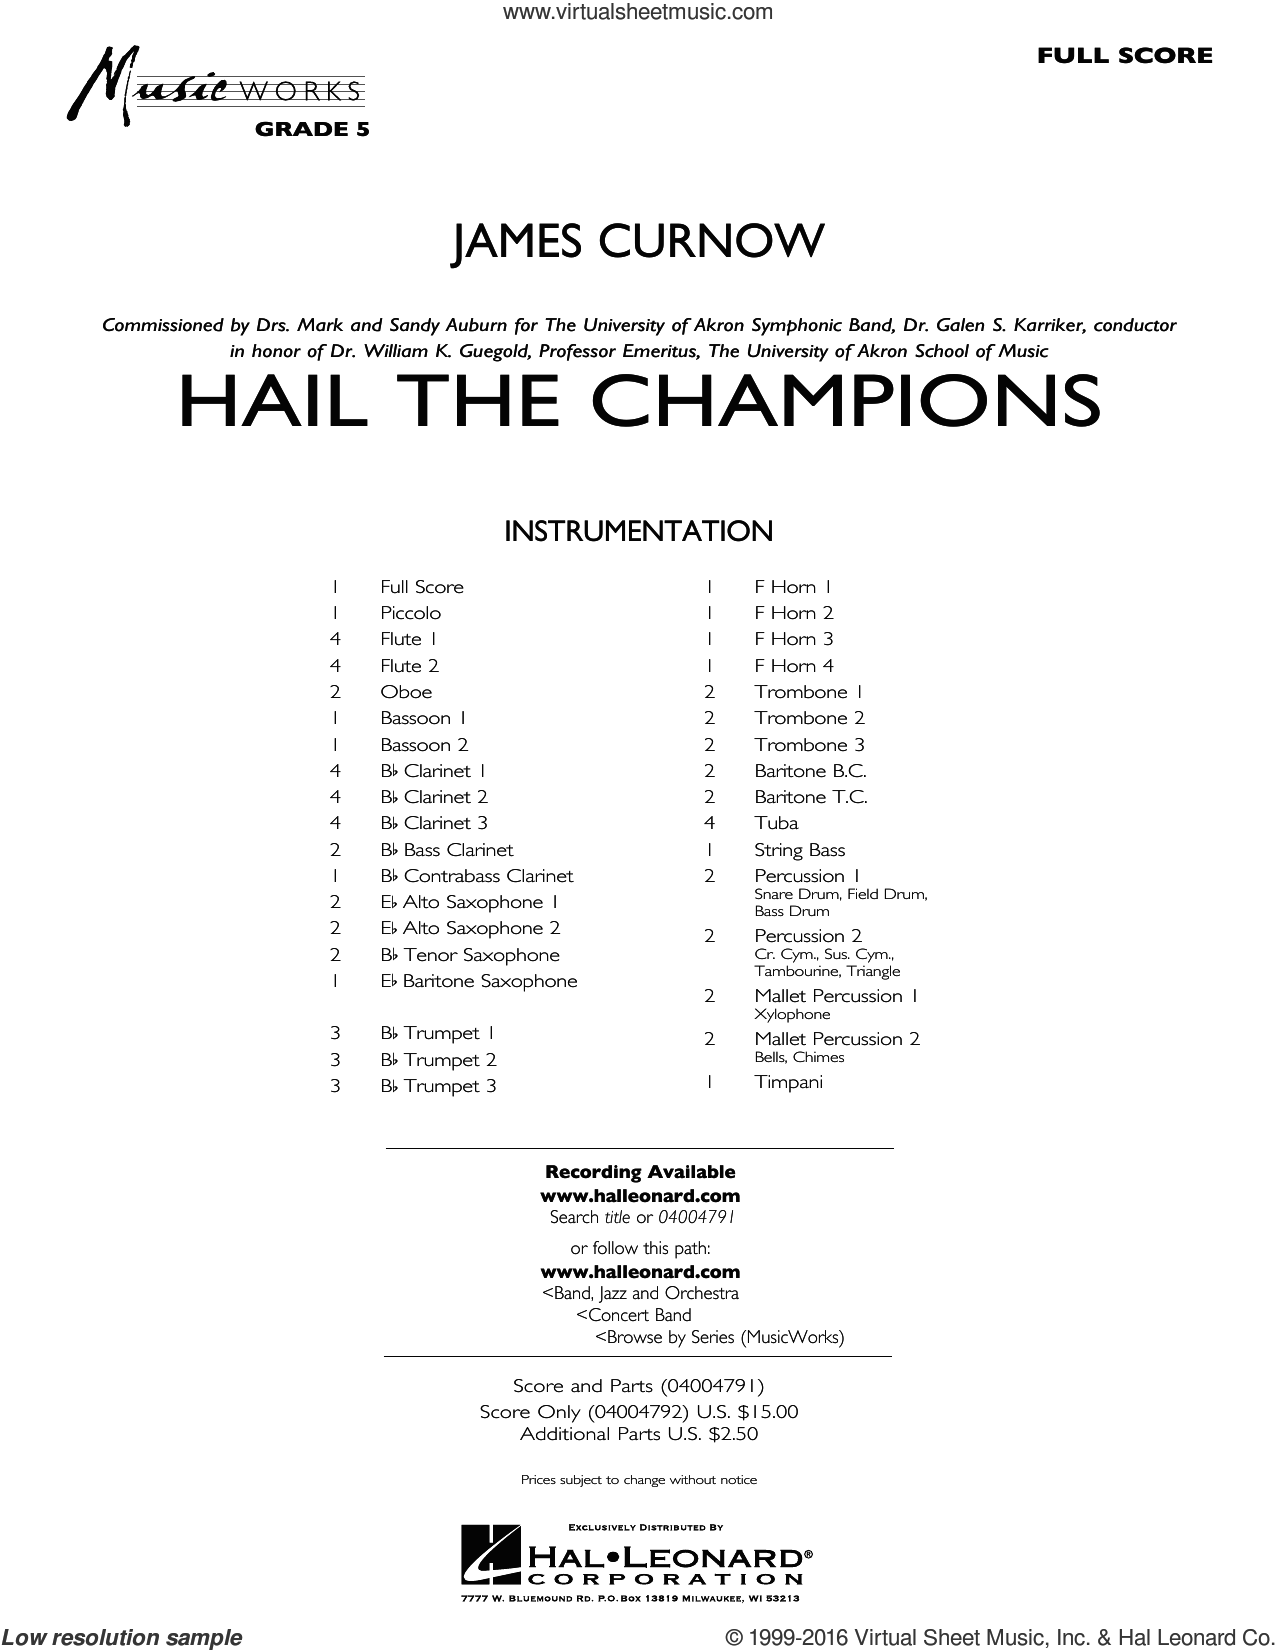 Hail the Champions (COMPLETE) sheet music for concert band by James Curnow